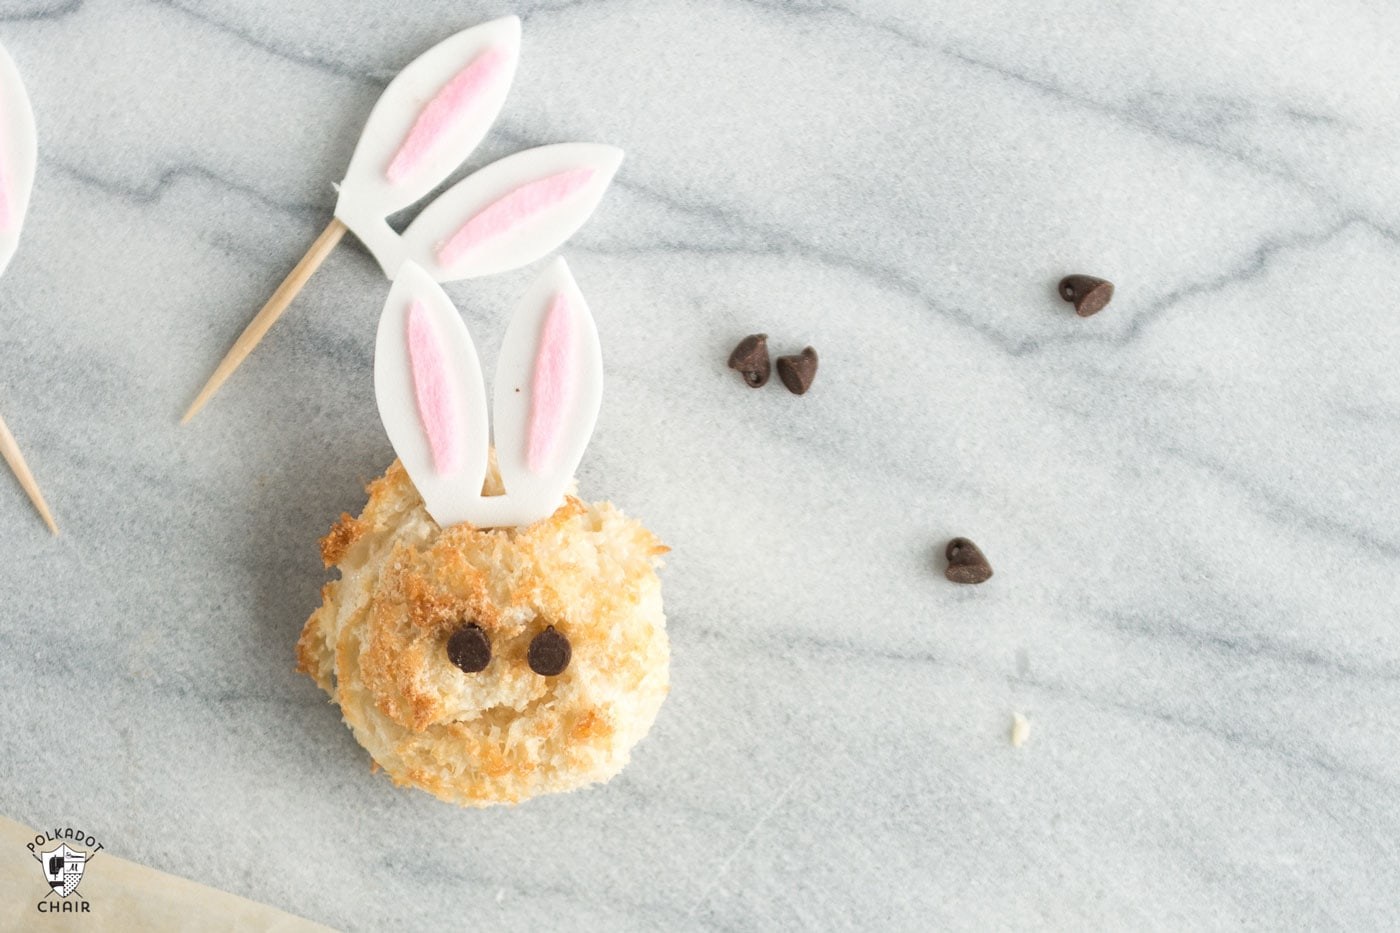 Recipe for Sugar Free Macaroons that look like Easter Bunnies. A cute recipe and Easter dessert idea